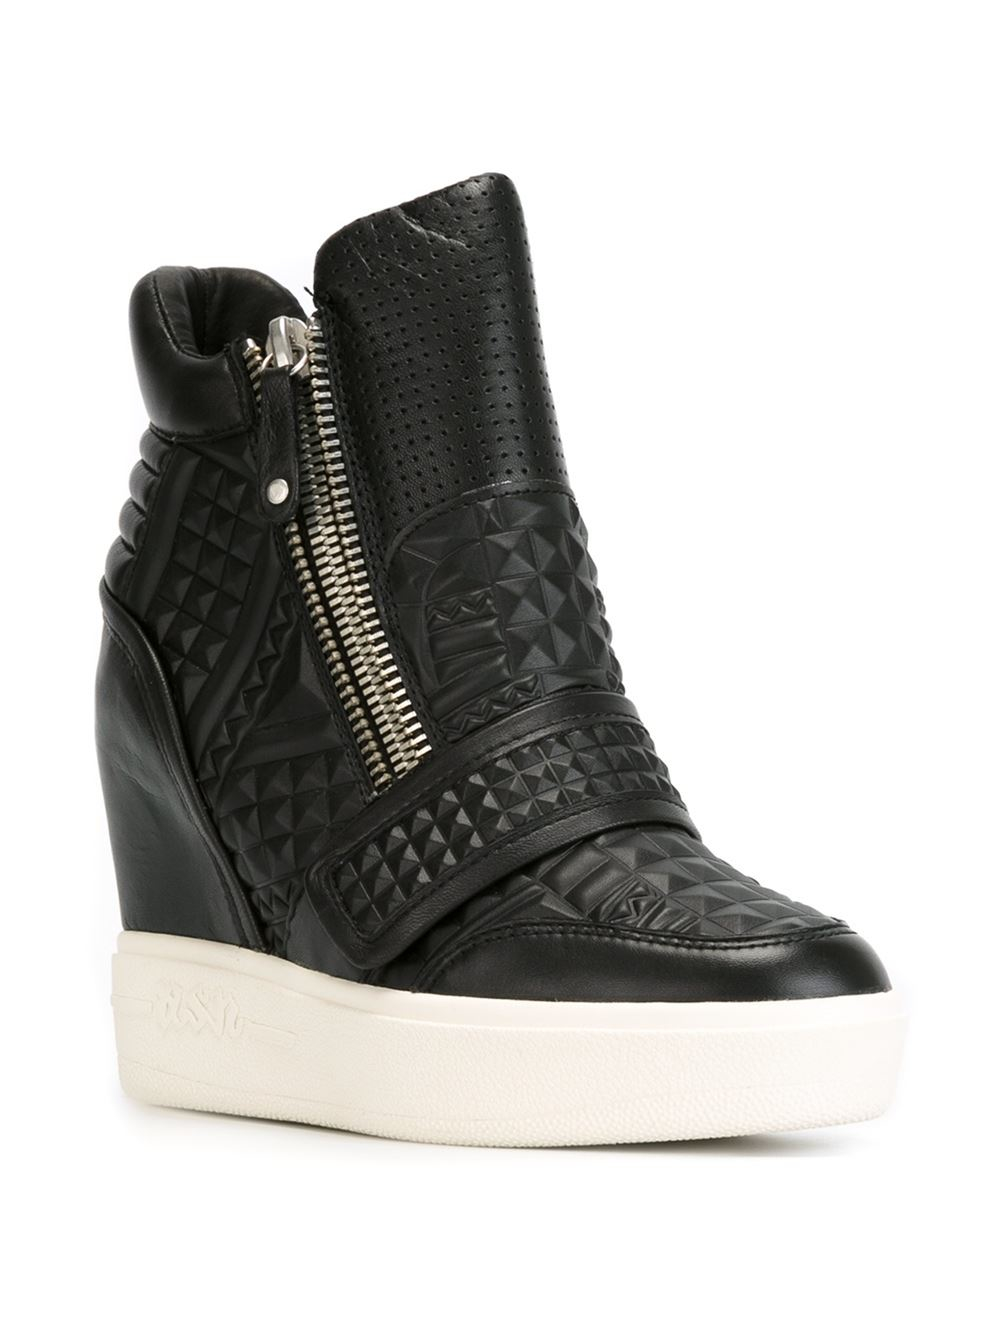 Find great deals on eBay for wedge sneaker. Shop with confidence.